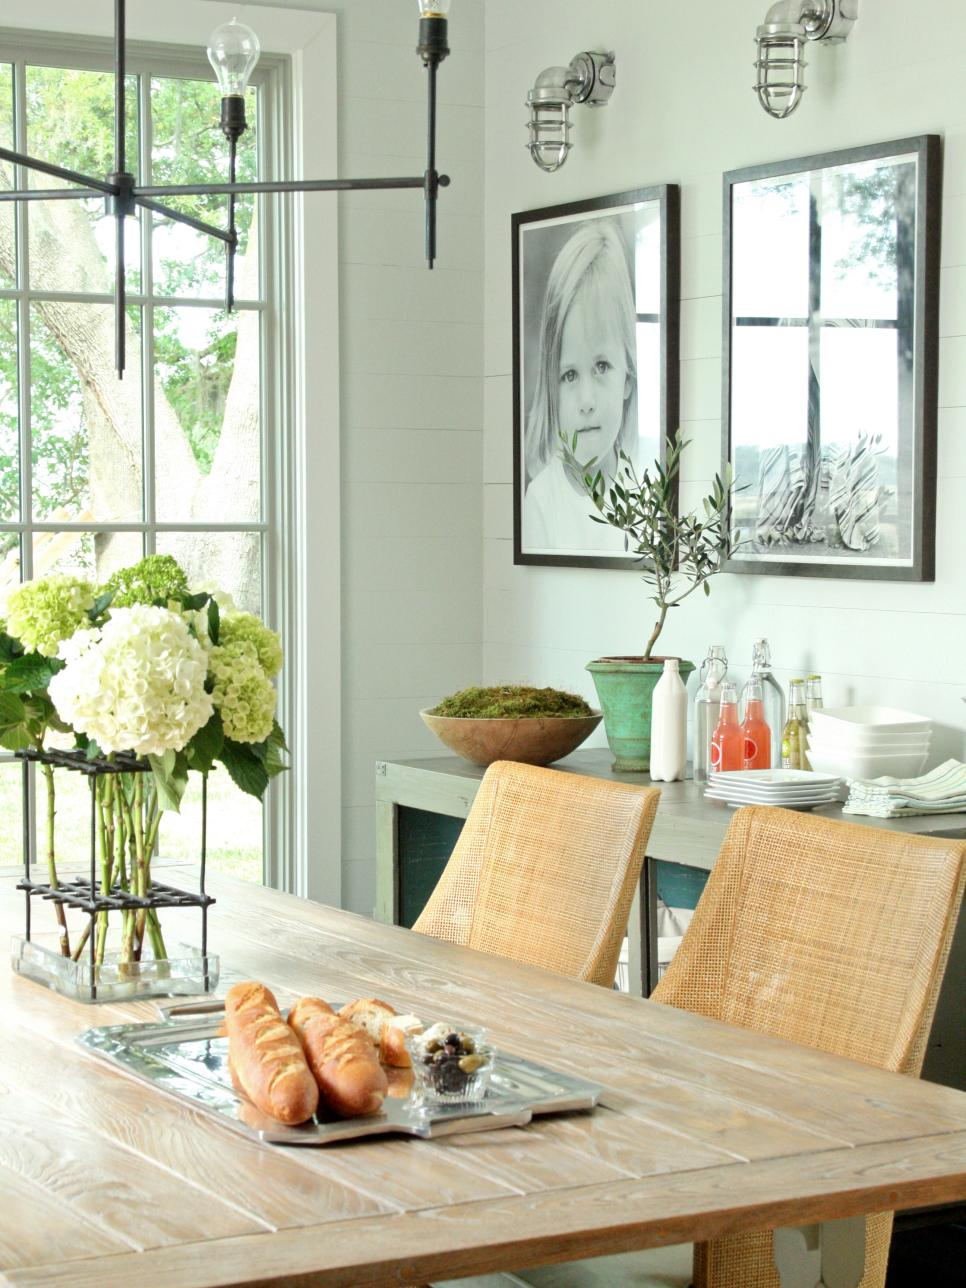 15 dining room decorating ideas | hgtv